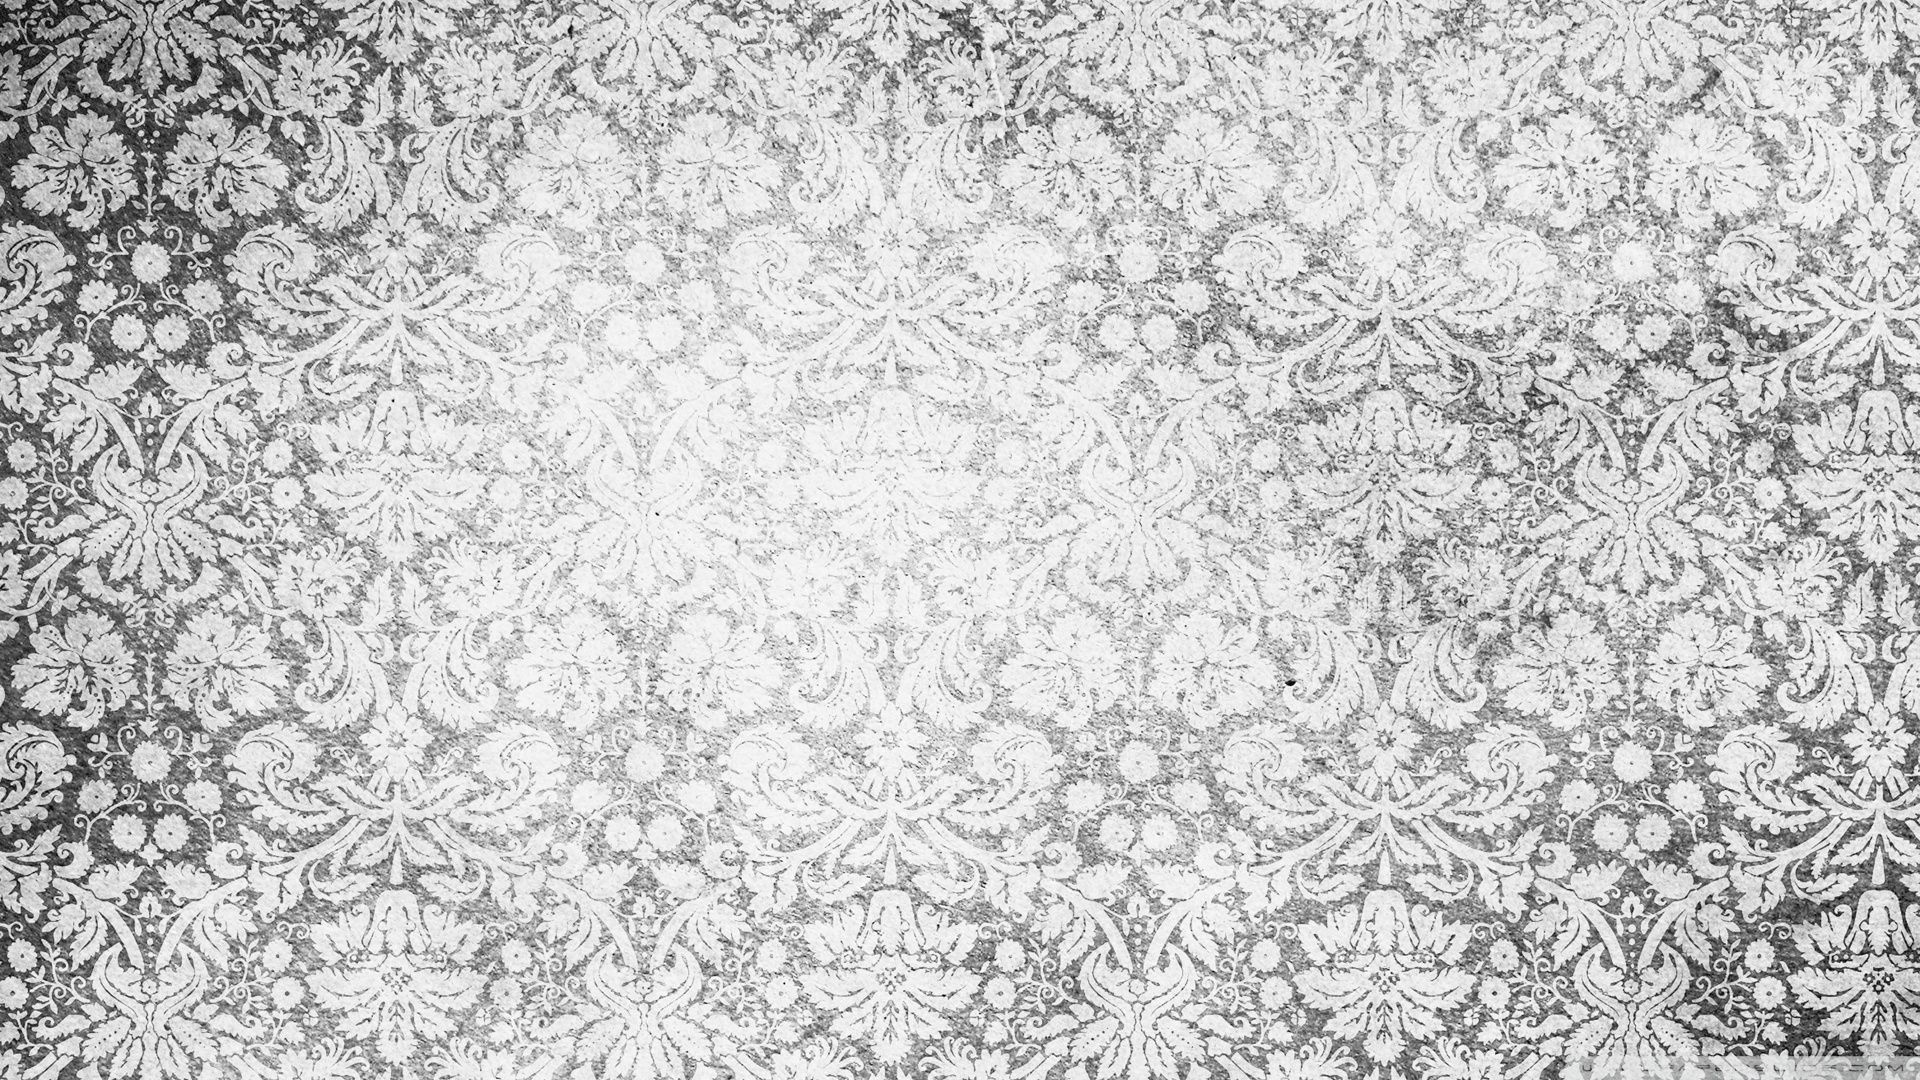 Vintage wallpaper black and white vintage pattern wallpaper